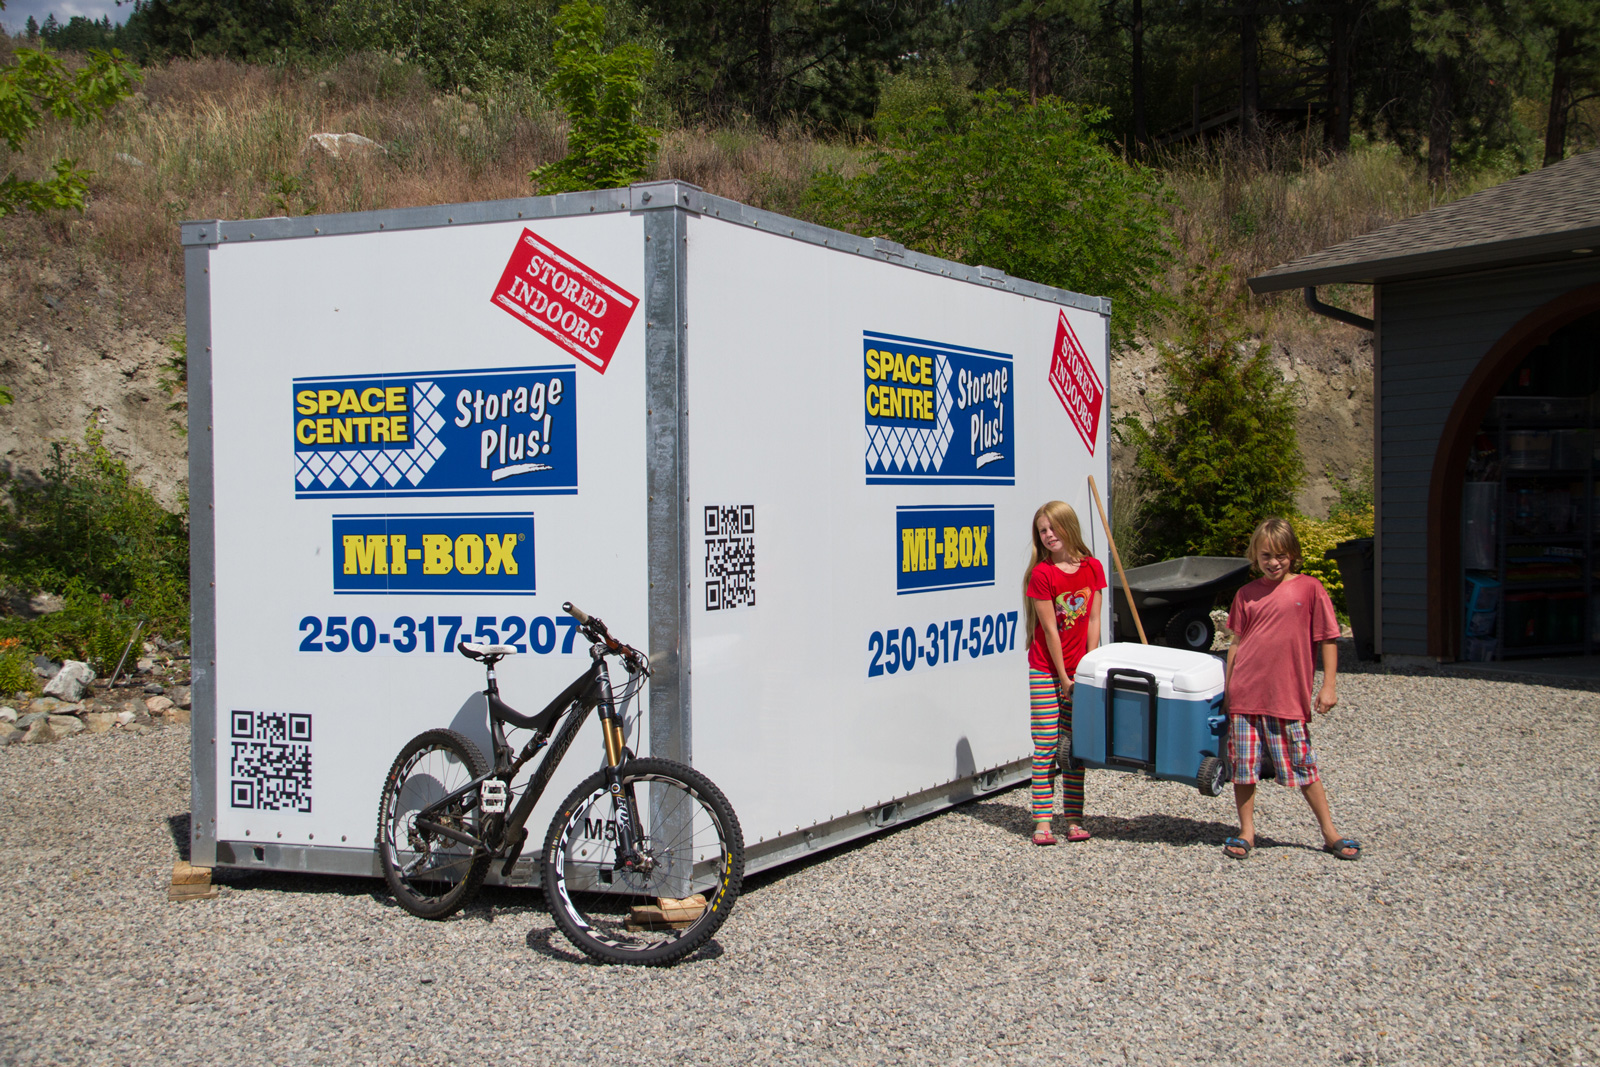 Kelowna mi-box storage container for moving & Moving Trucks vs. the Mobile Storage Units Kelowna Homeowners Trust ...